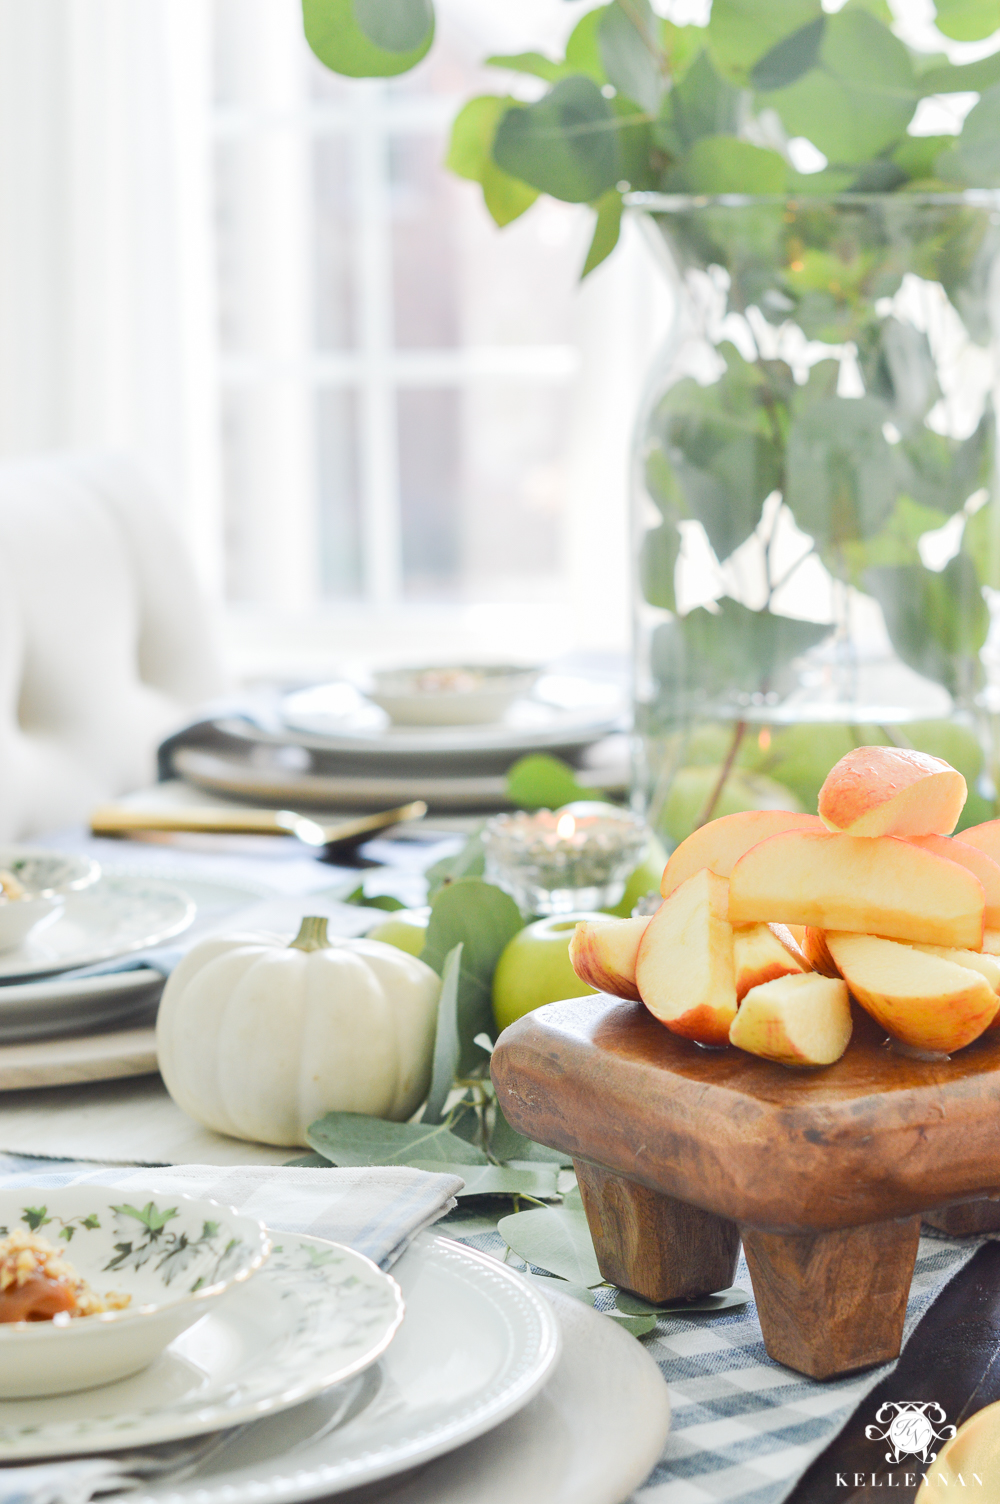 Fall Caramel Apple Table Place Setting Ideas- cheese board with apples